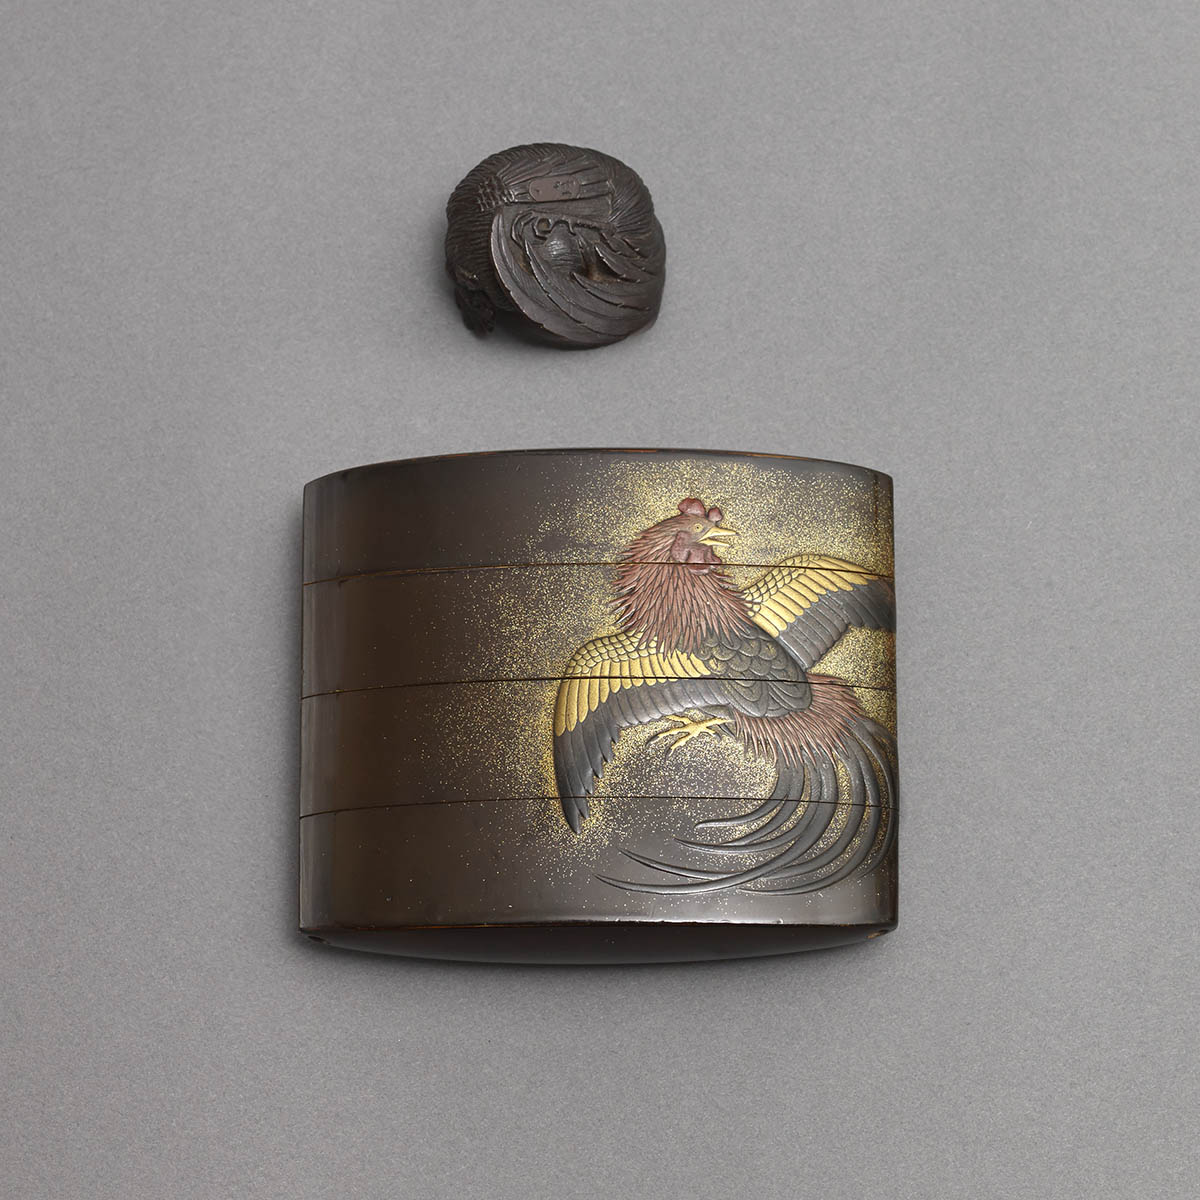 Lacquer Fighting Cocks Inro - back view